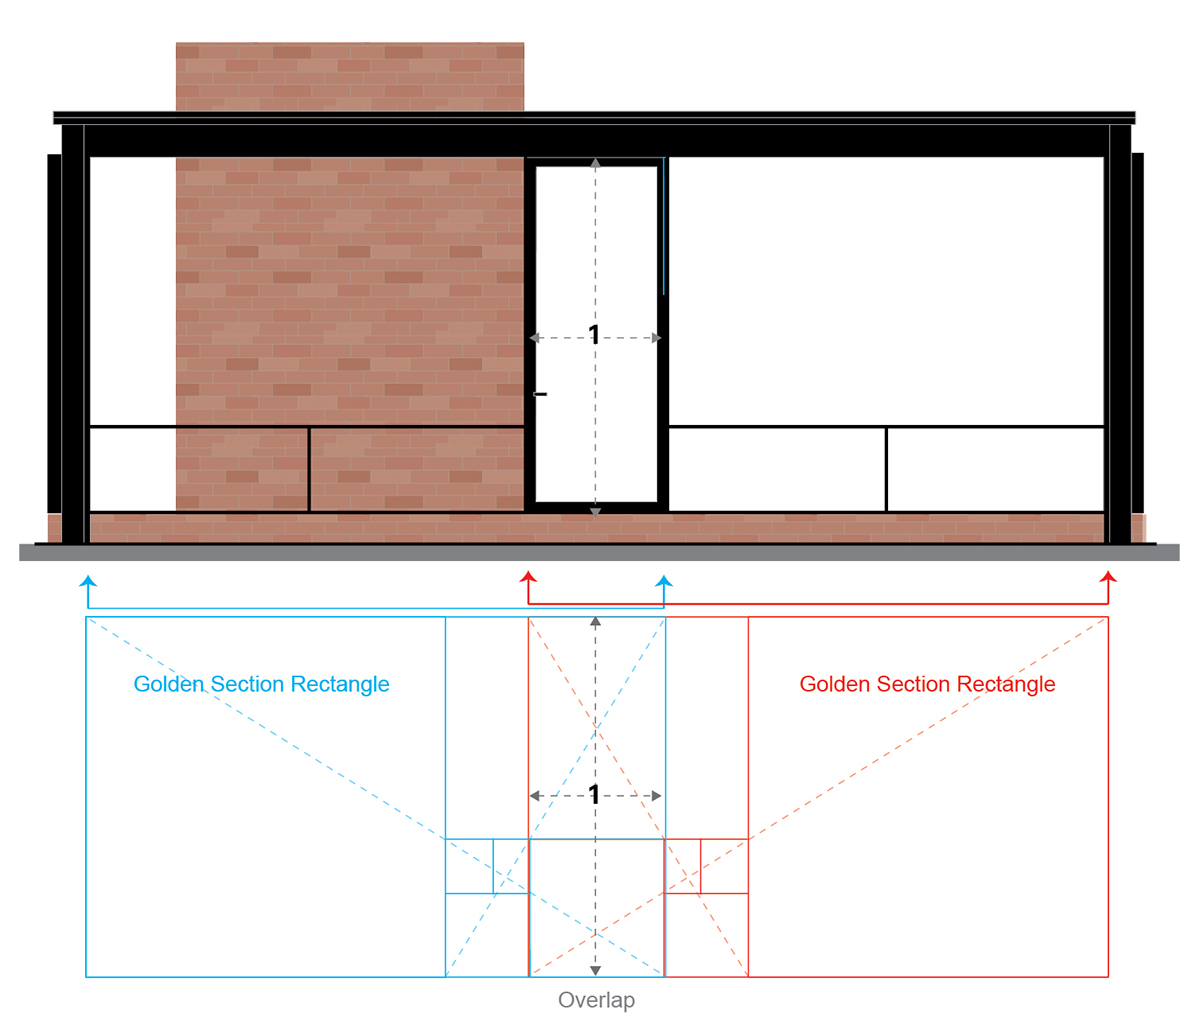 Glass house side elevation and golden section proportions